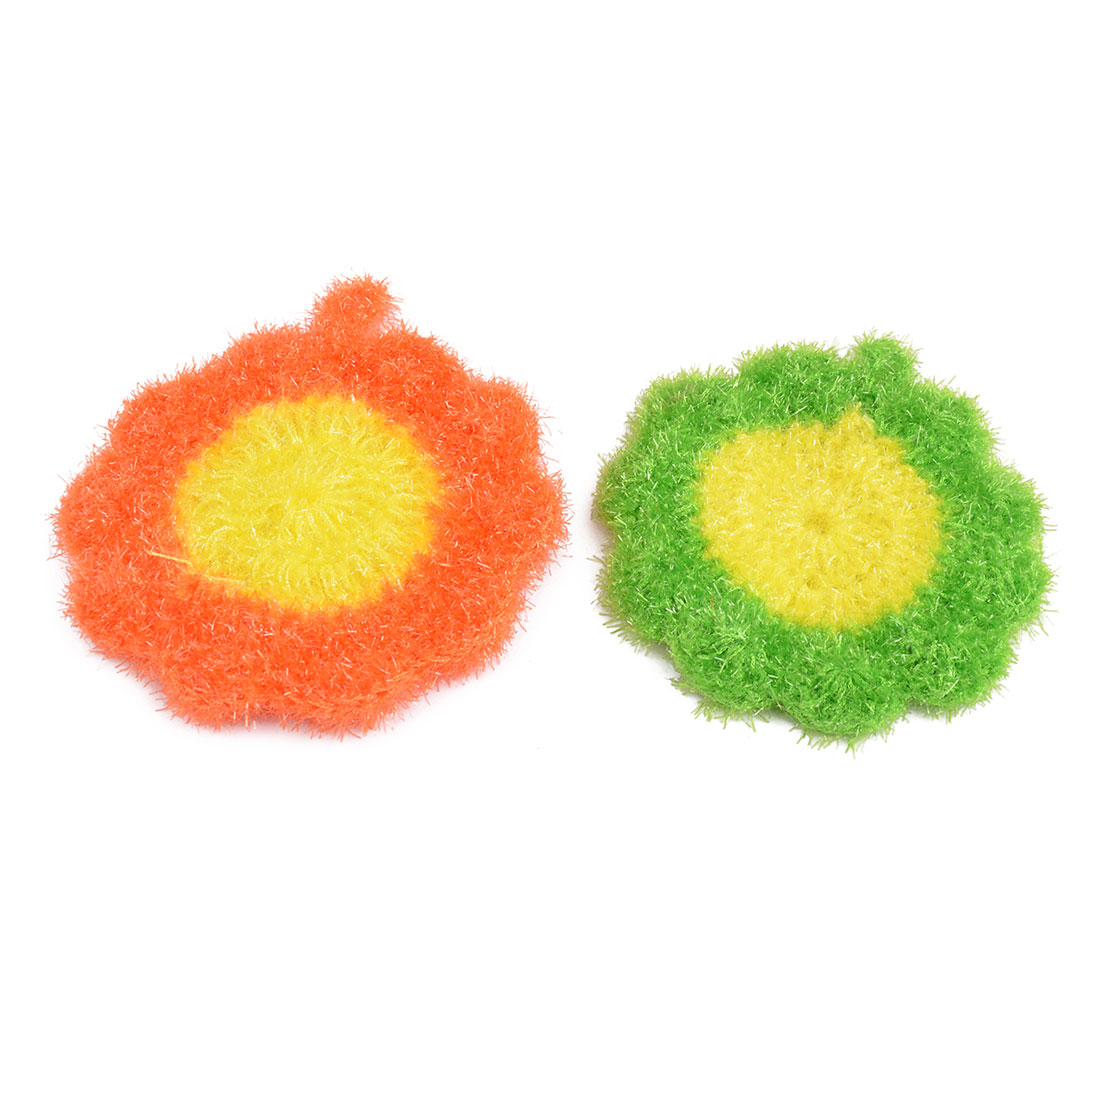 Household Nylon Flower Shaped Kitchenware Bowl Spoon Plate Cleaning Pad Green Orange 2 Pcs